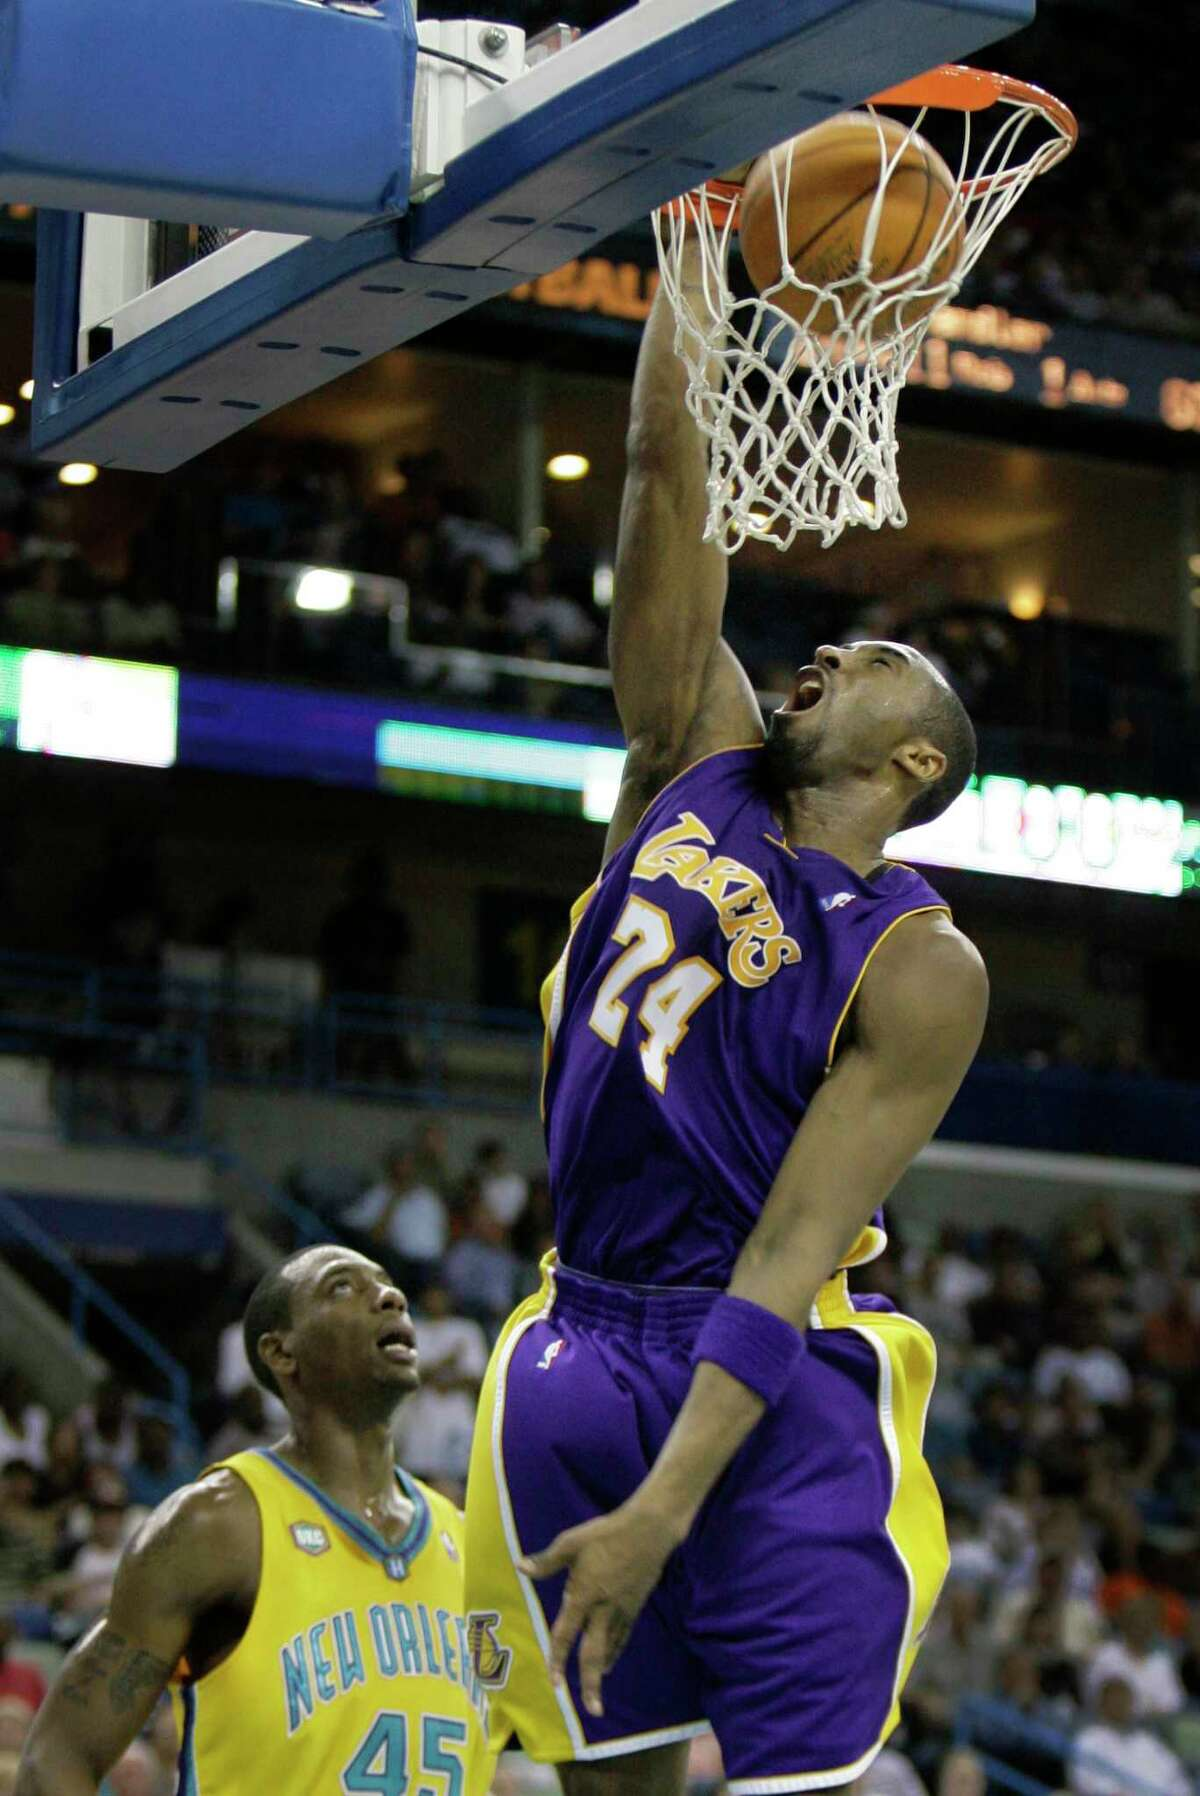 Los Angeles Lakers guard Kobe Bryant dunks as New Orleans Hornets forward Rasual Butler looks on in the first half of an NBA basketball game in New Orleans on Friday, March 23, 2007. (AP Photo/Alex Brandon)